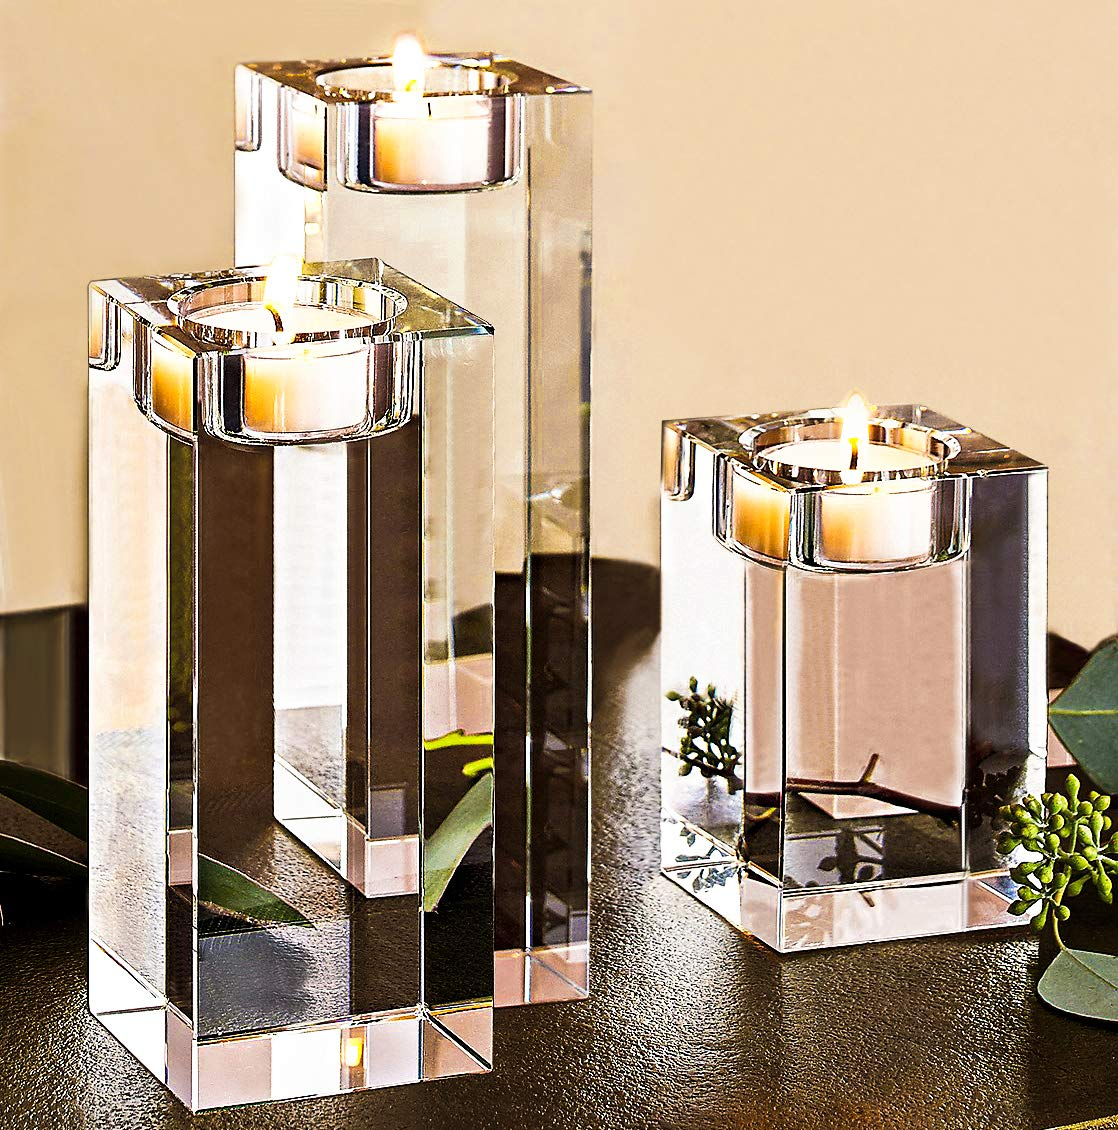 Amazing Home Large Crystal Candle Holders Set of 3, 3.1/4.6/6.2 inches Height, Delicate Giftbox, Elegant Solid Square Tealight Holders, Centerpieces for Wedding, Home Decor, Ceremony and Anniversary